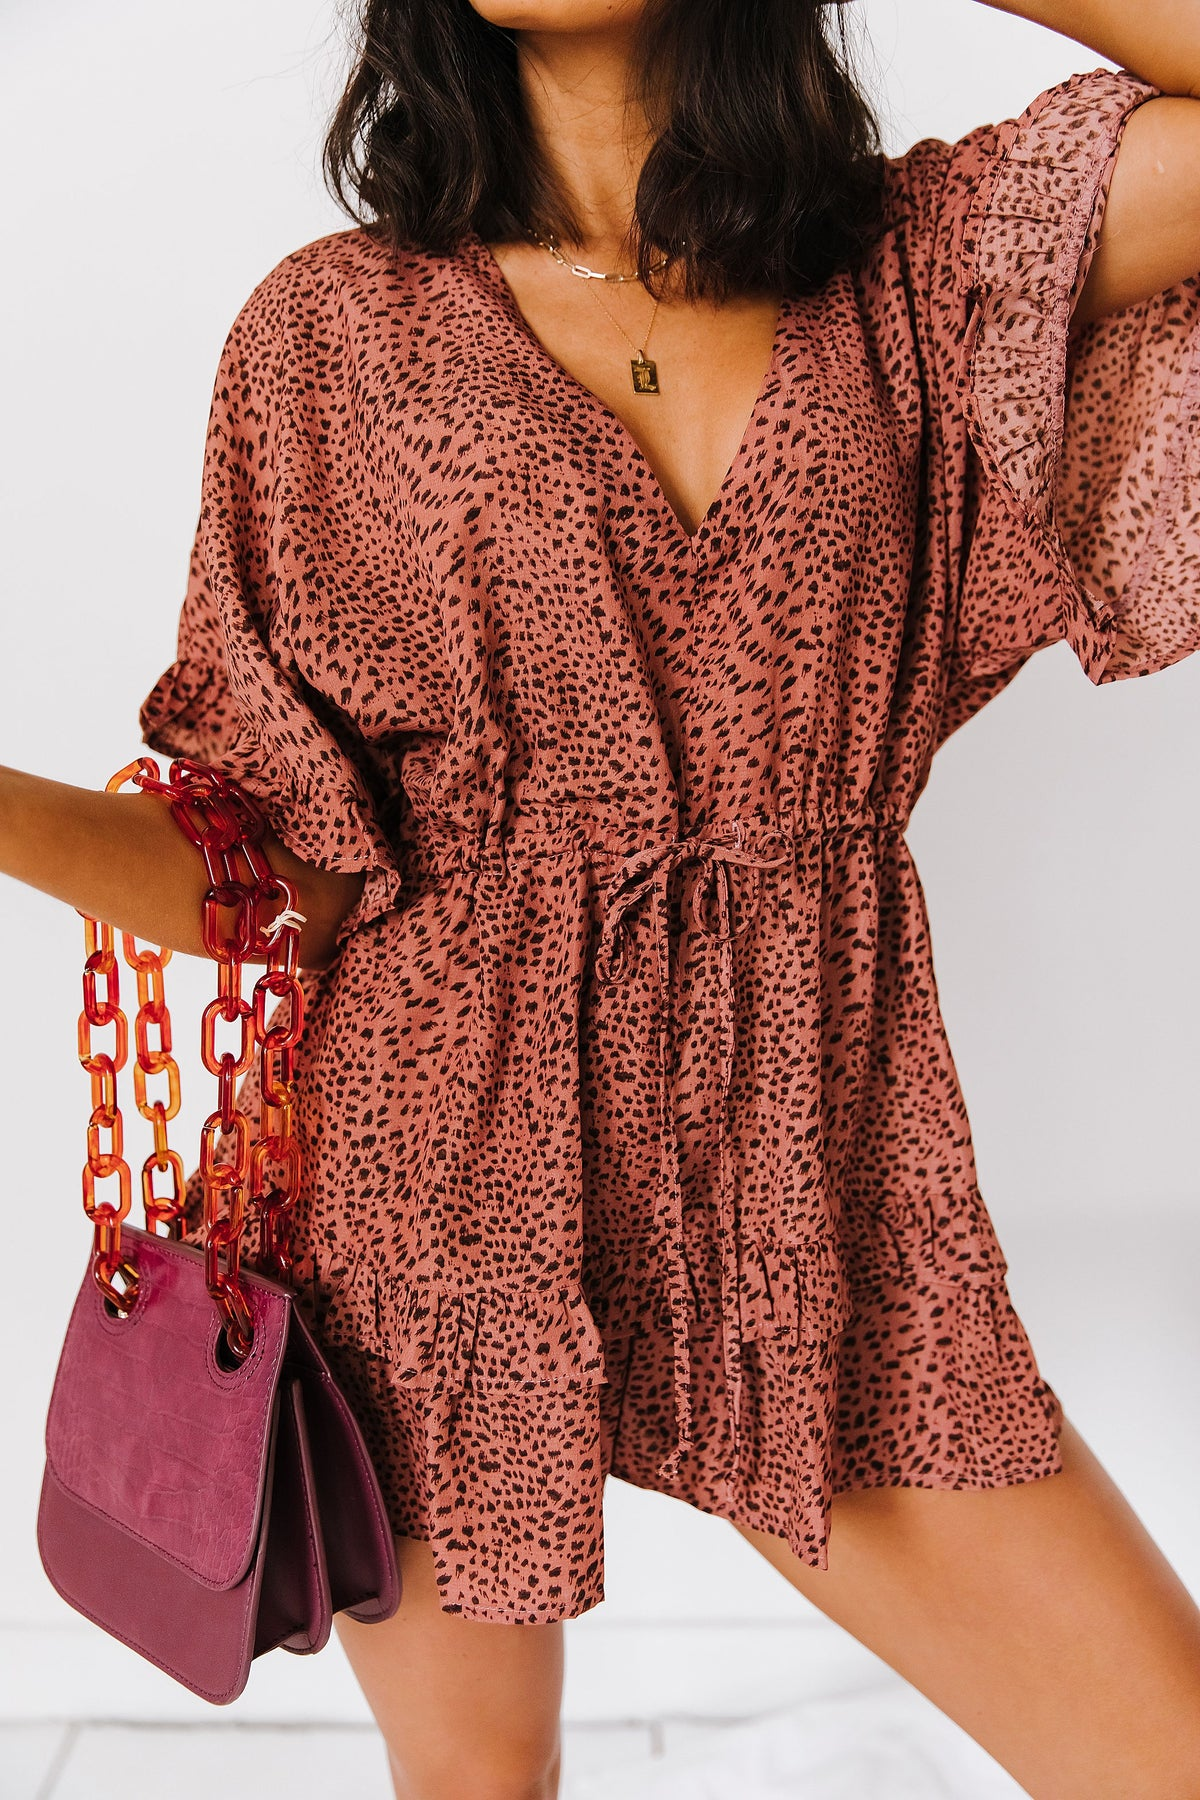 Keep Your Edge Leopard Romper